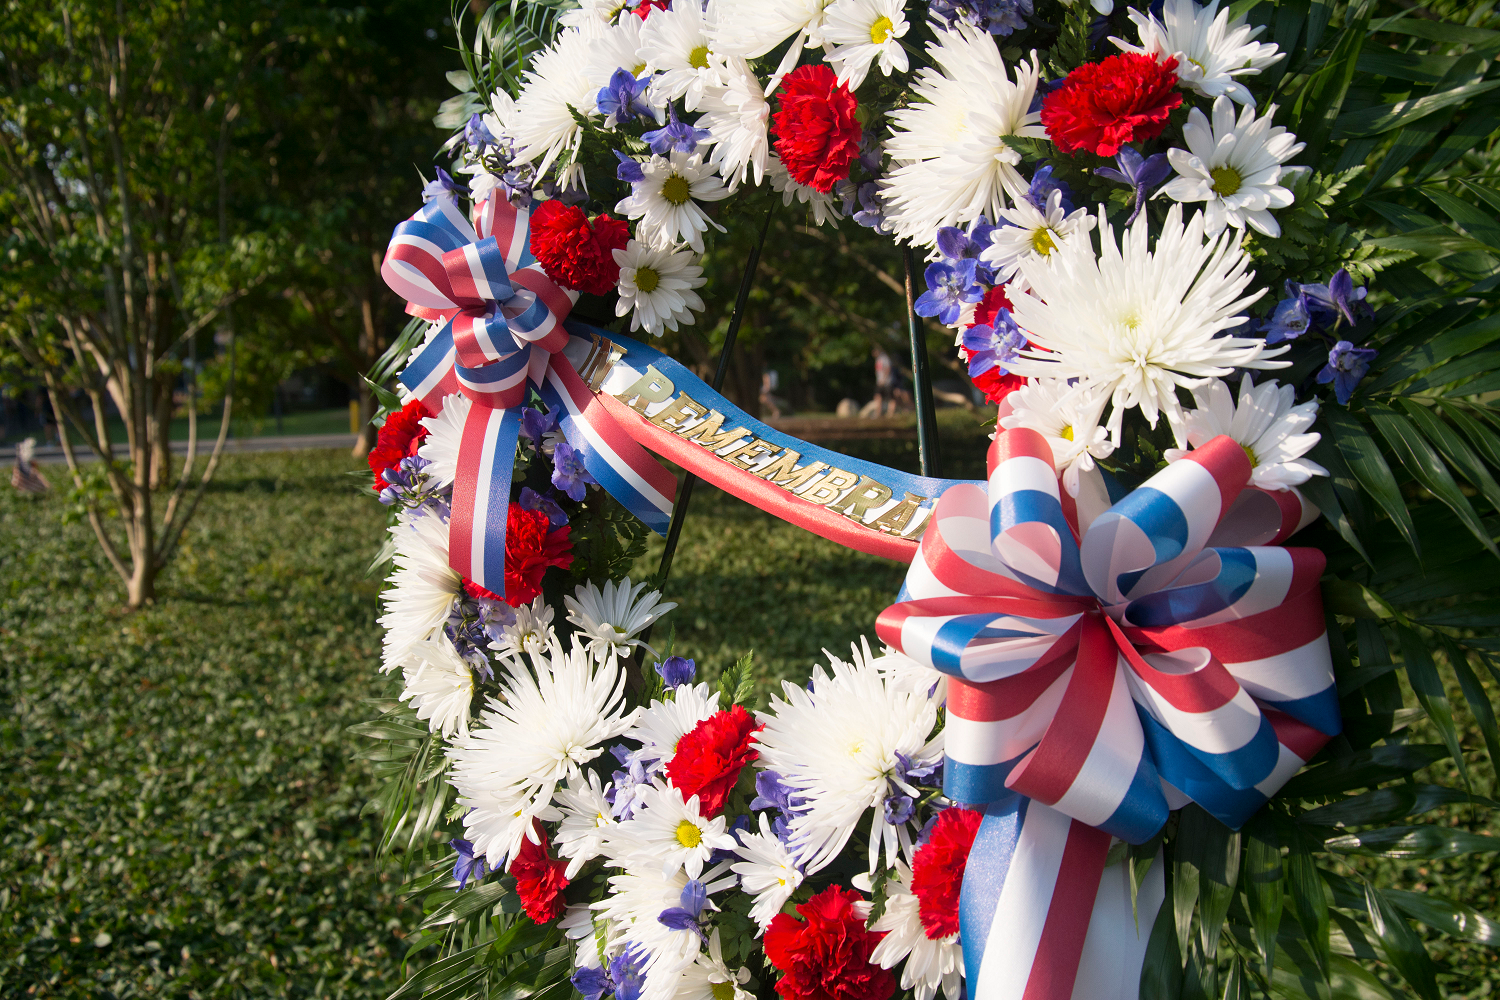 The commemoratory  wreath was moved to the remembrance grove after the school bell tolled 21 times in honor of the fallen alumni.